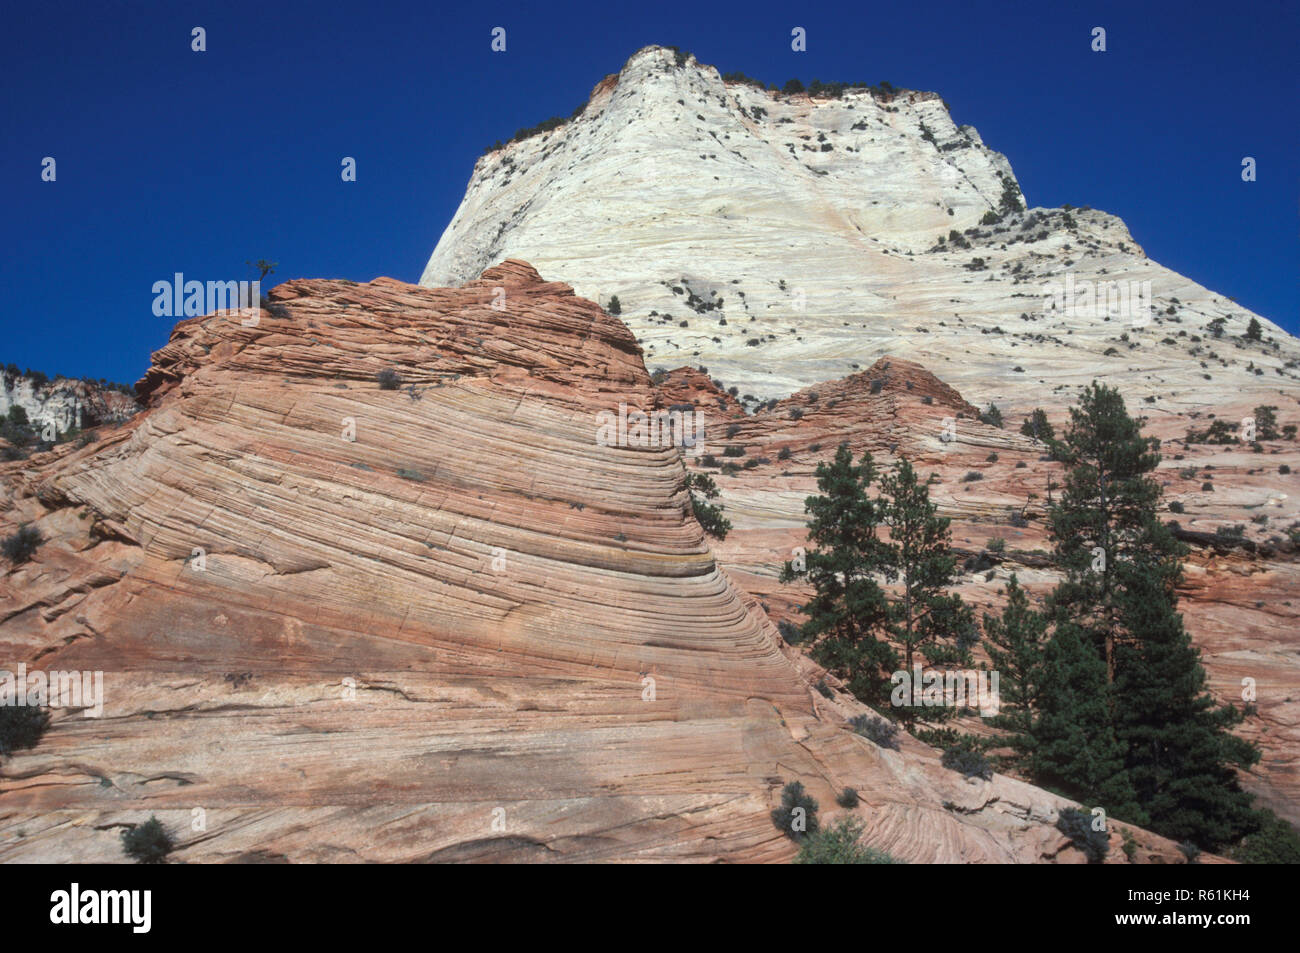 Zion in Utah, United States of America - Stock Image